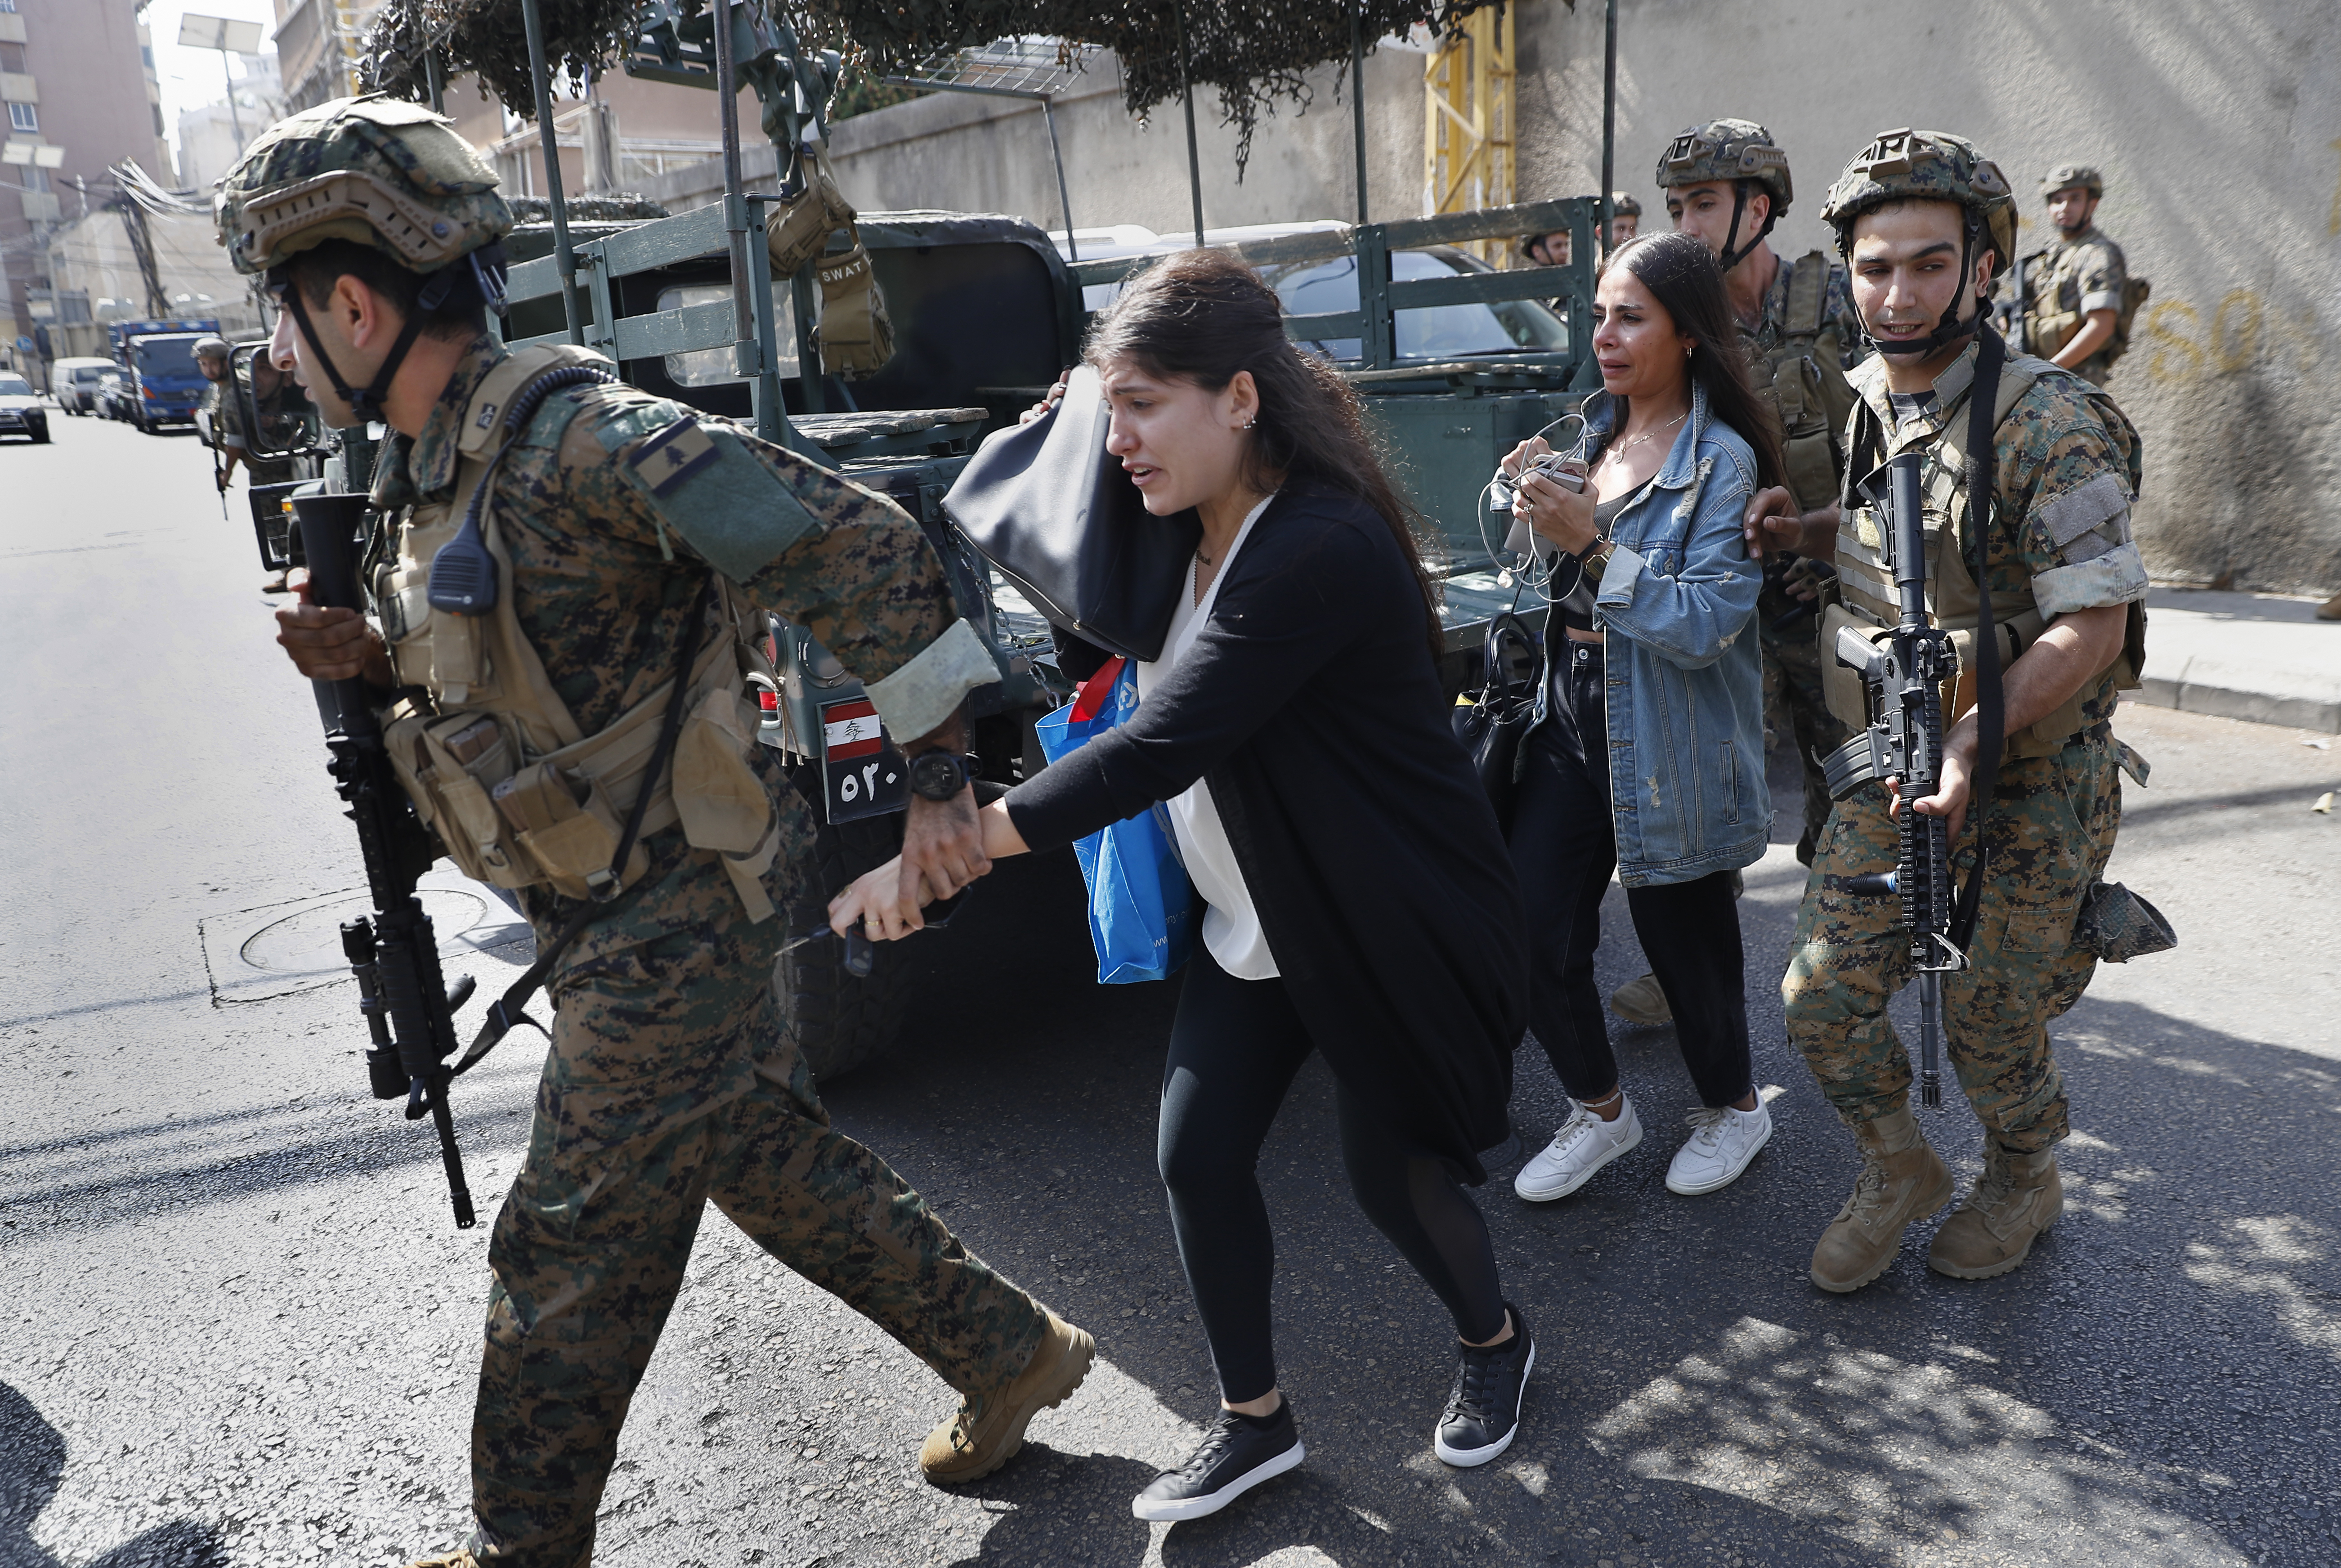 Lebanese army special forces soldiers assist teachers as they flee their school after deadly clashes erupted nearby along a former 1975-90 civil war front-line between Muslim Shiite and Christian areas at Ain el-Remaneh neighborhood, in Beirut, Lebanon, Thursday, Oct. 14, 2021.